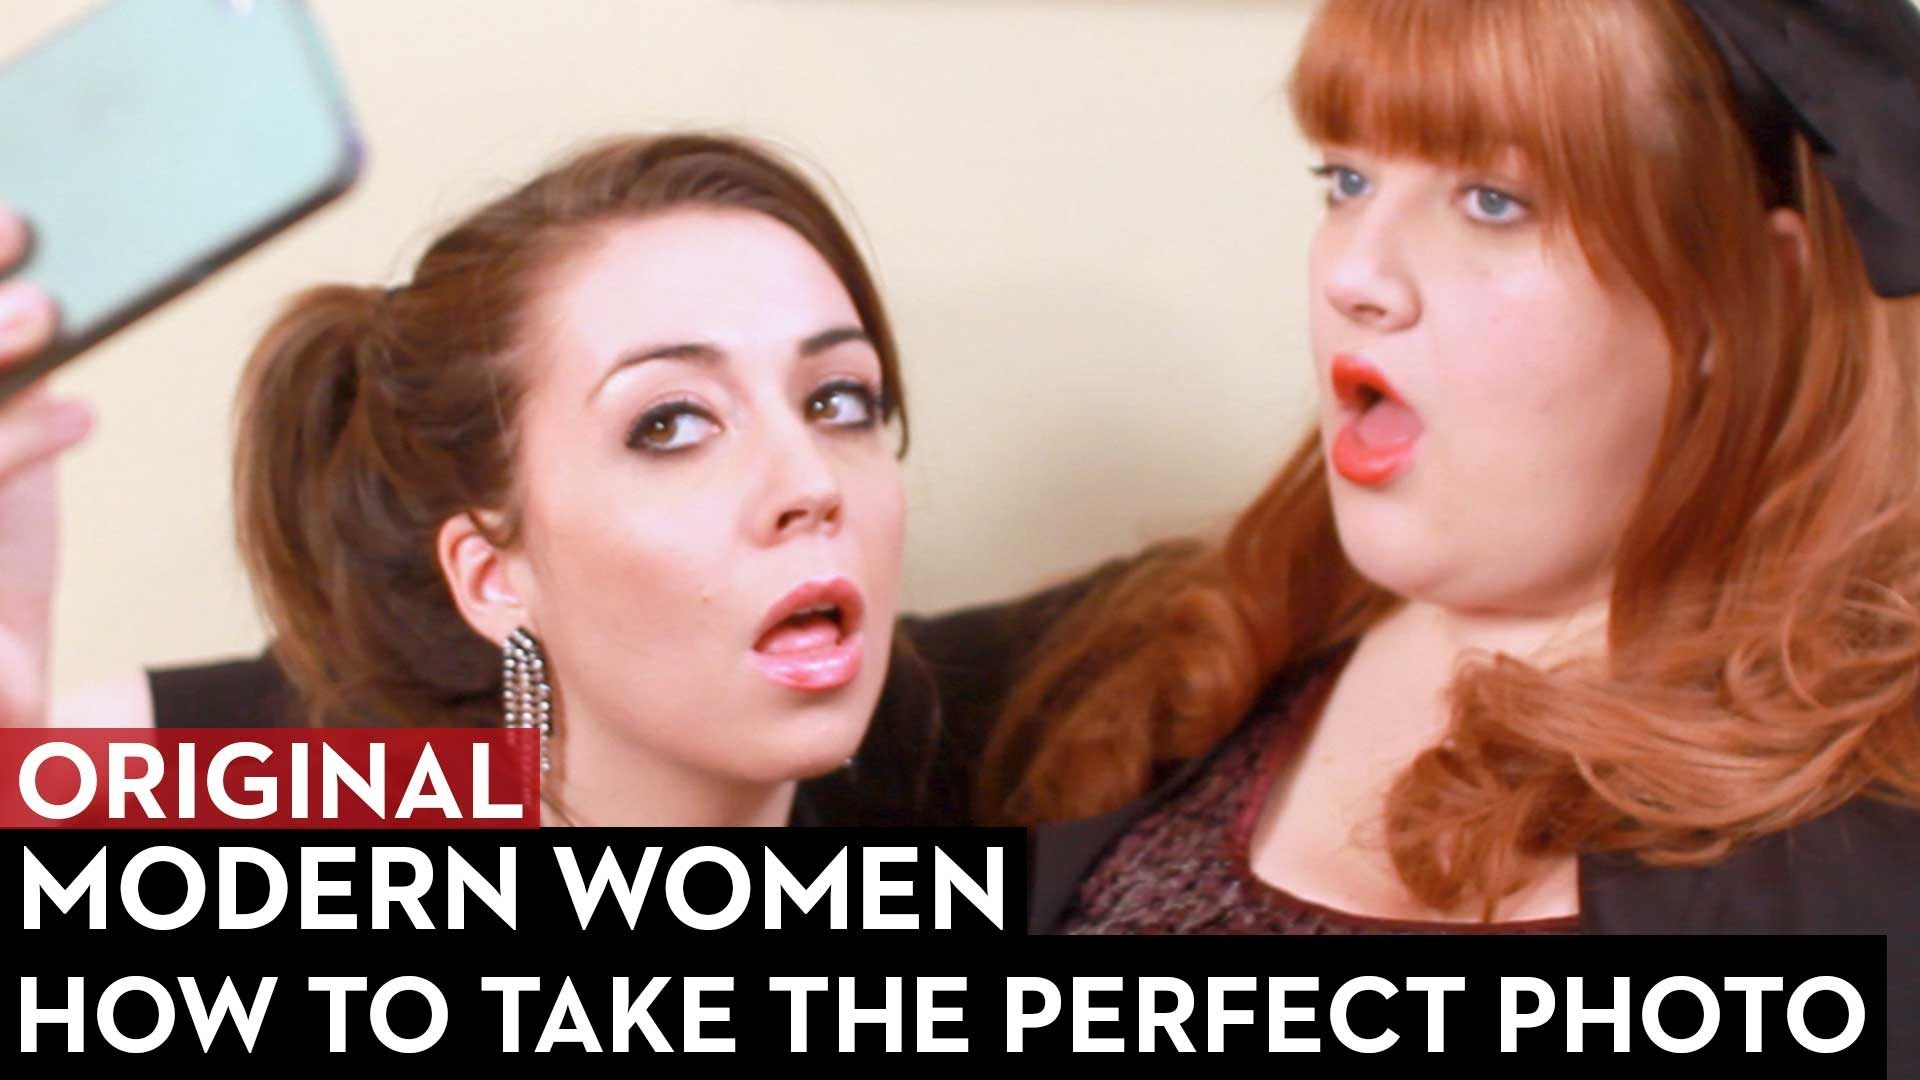 How to Take the Perfect Photo - Modern Women Episode 6